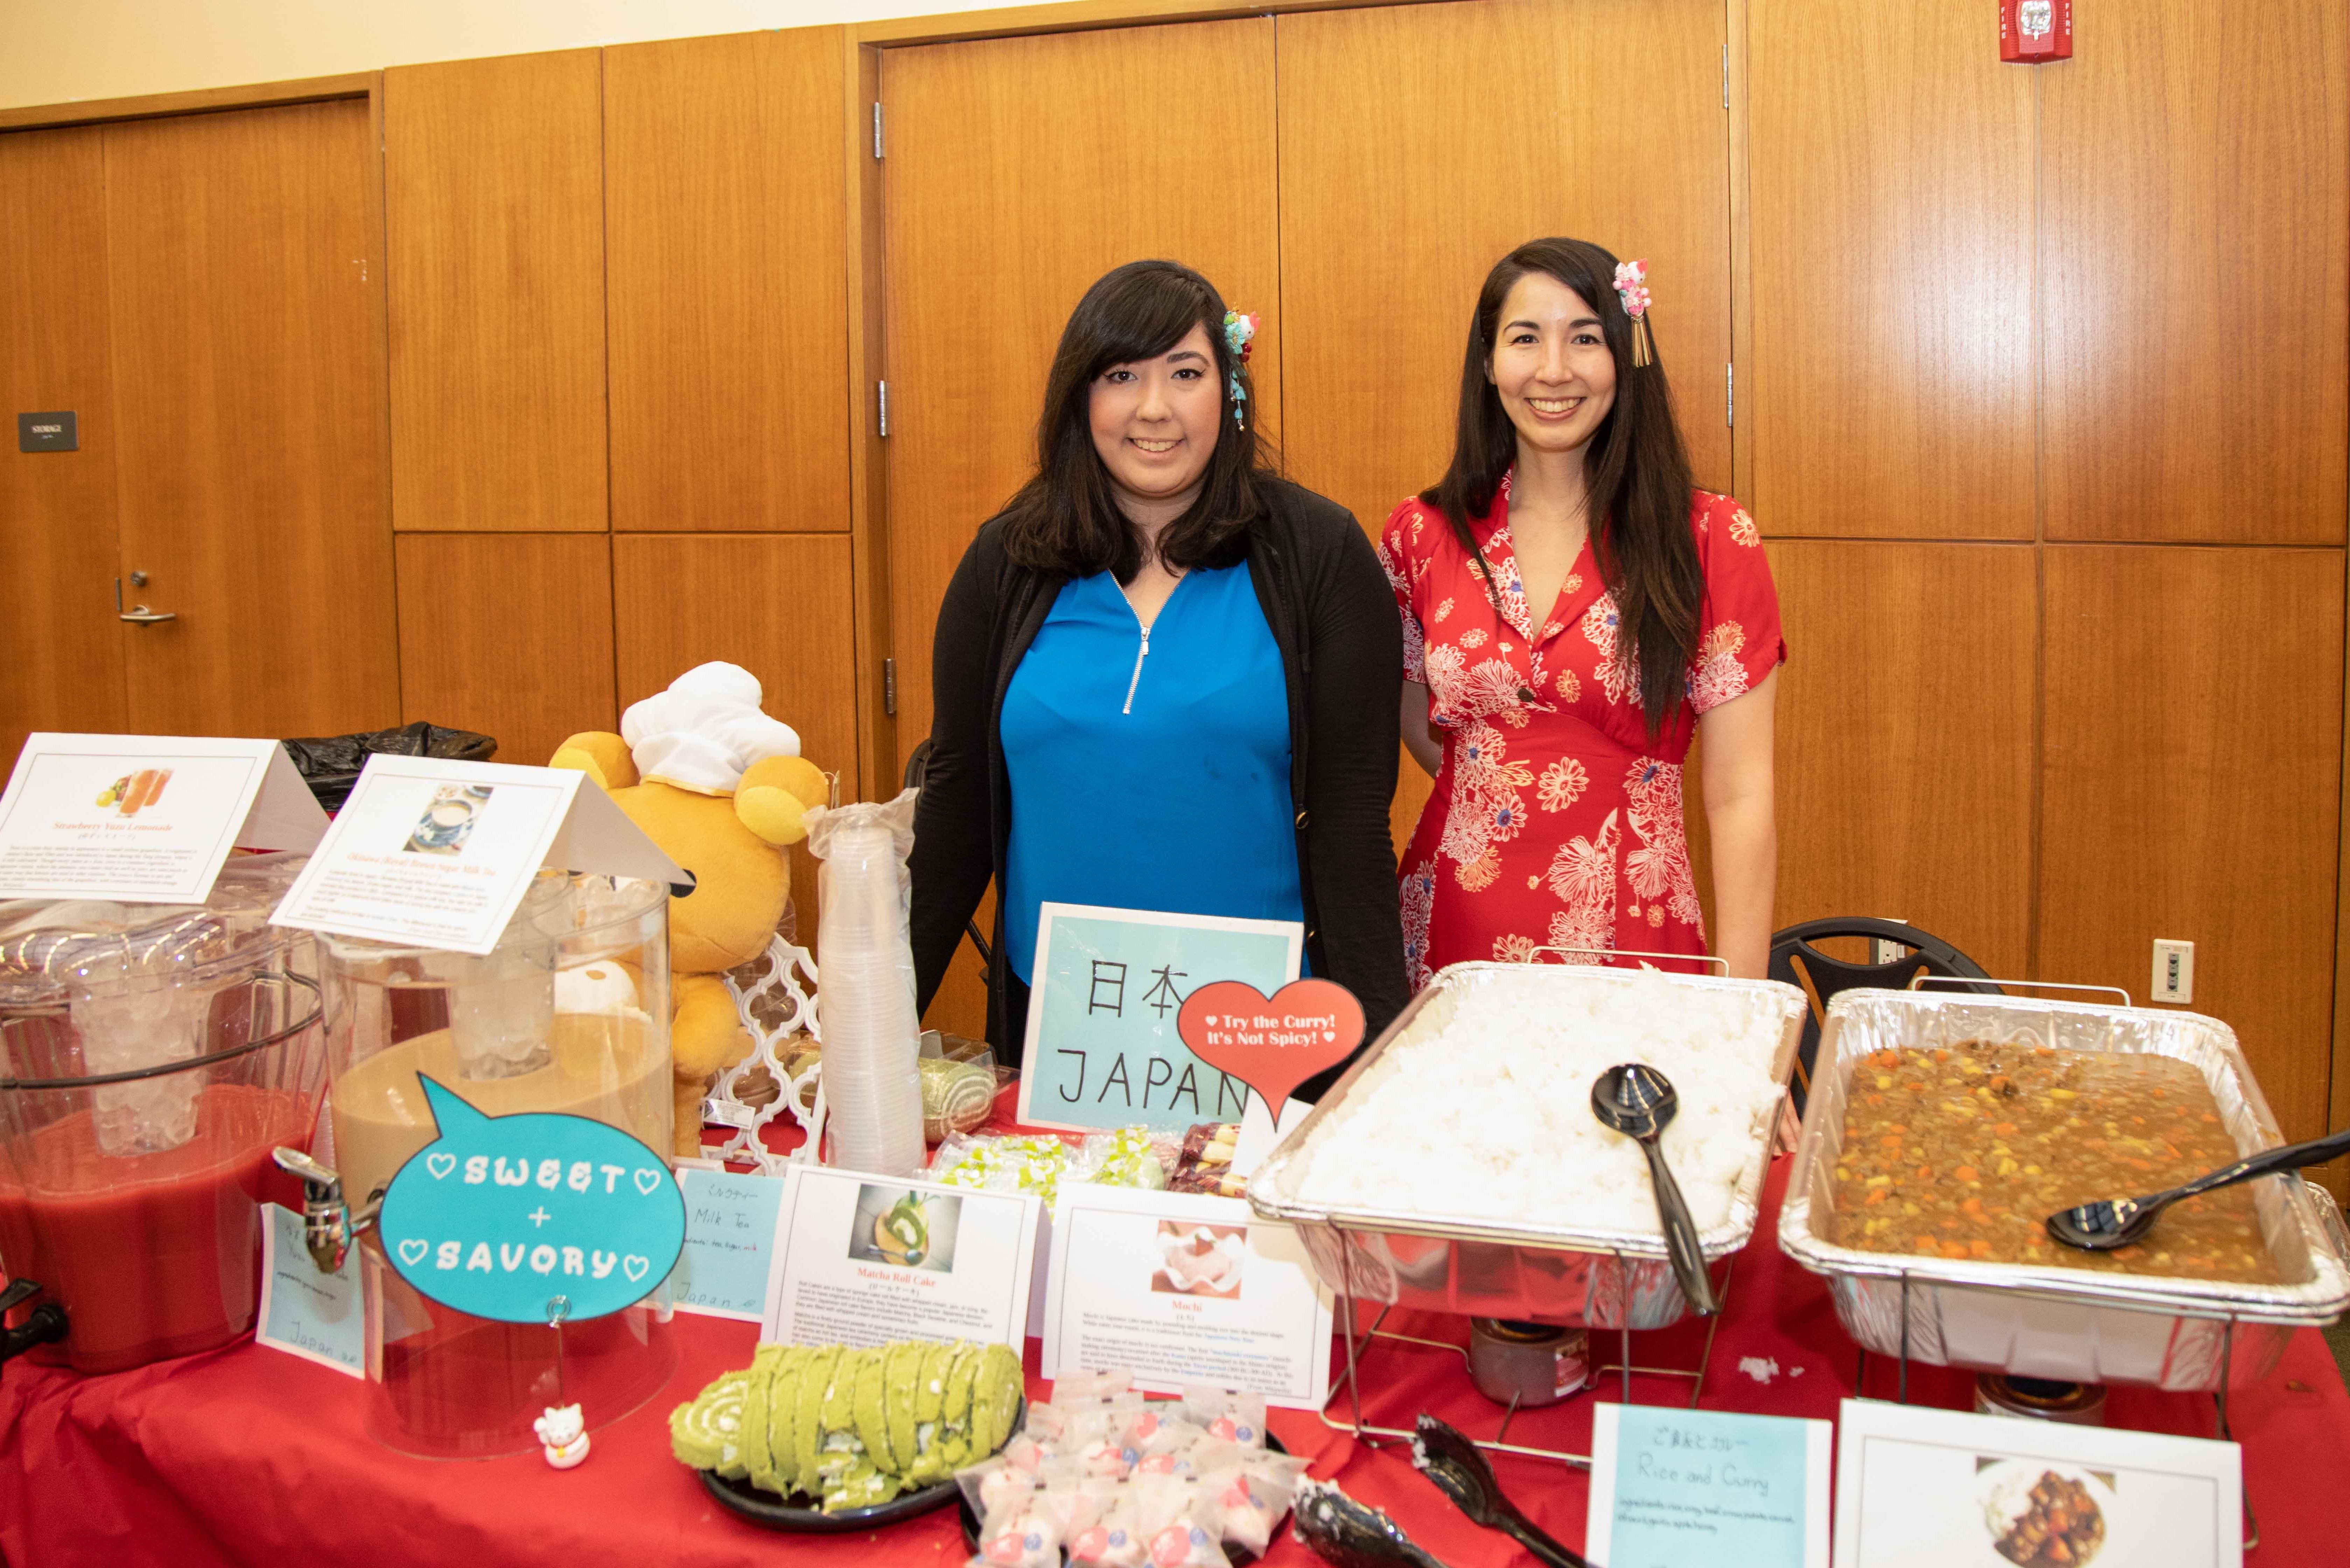 Two female students stand a the Japan table during celebrating cultures.